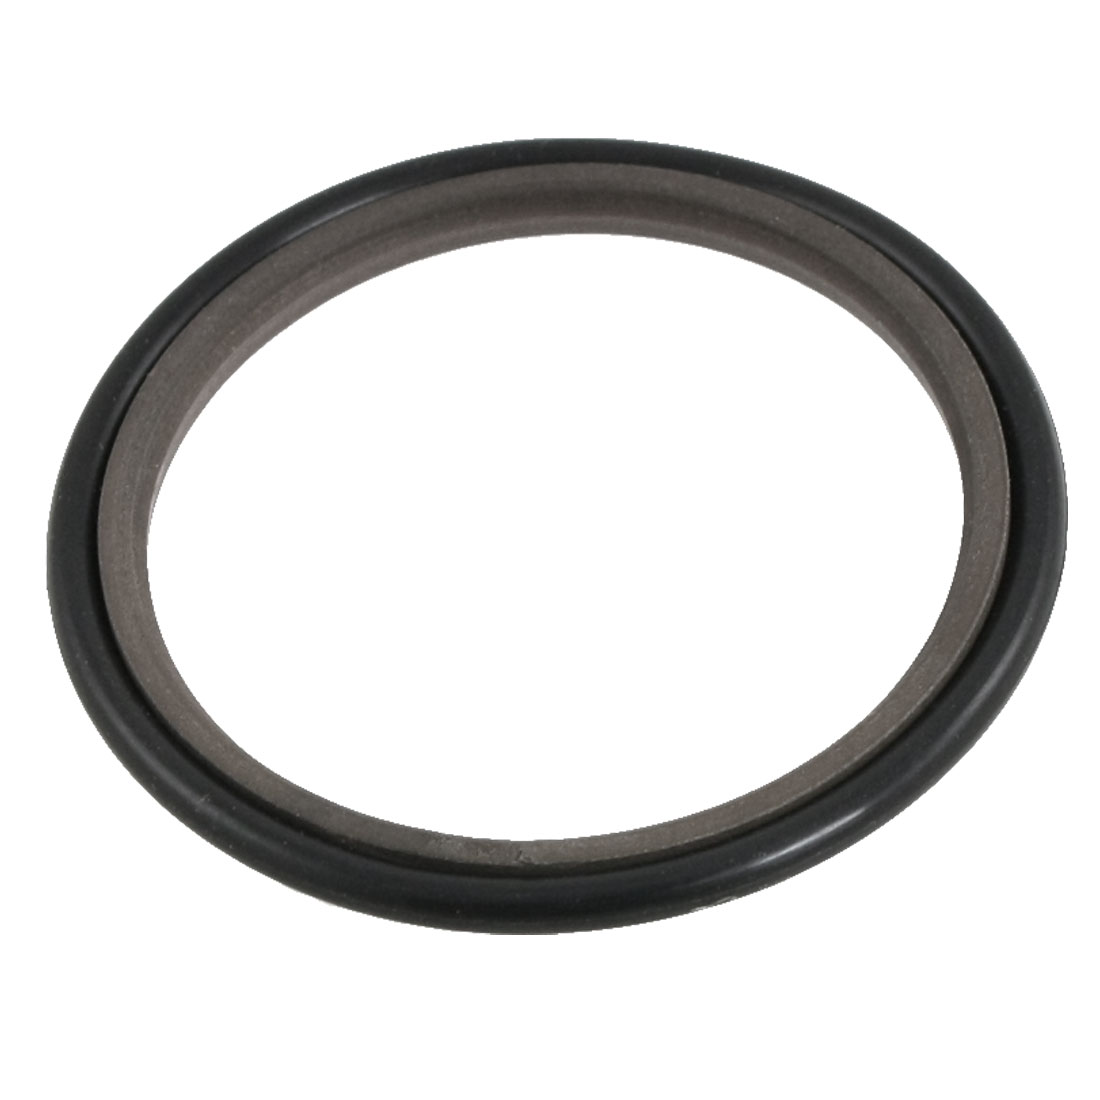 50x61x3.3mm NBR PTFE Hydraulic Rod Step Seal Ring